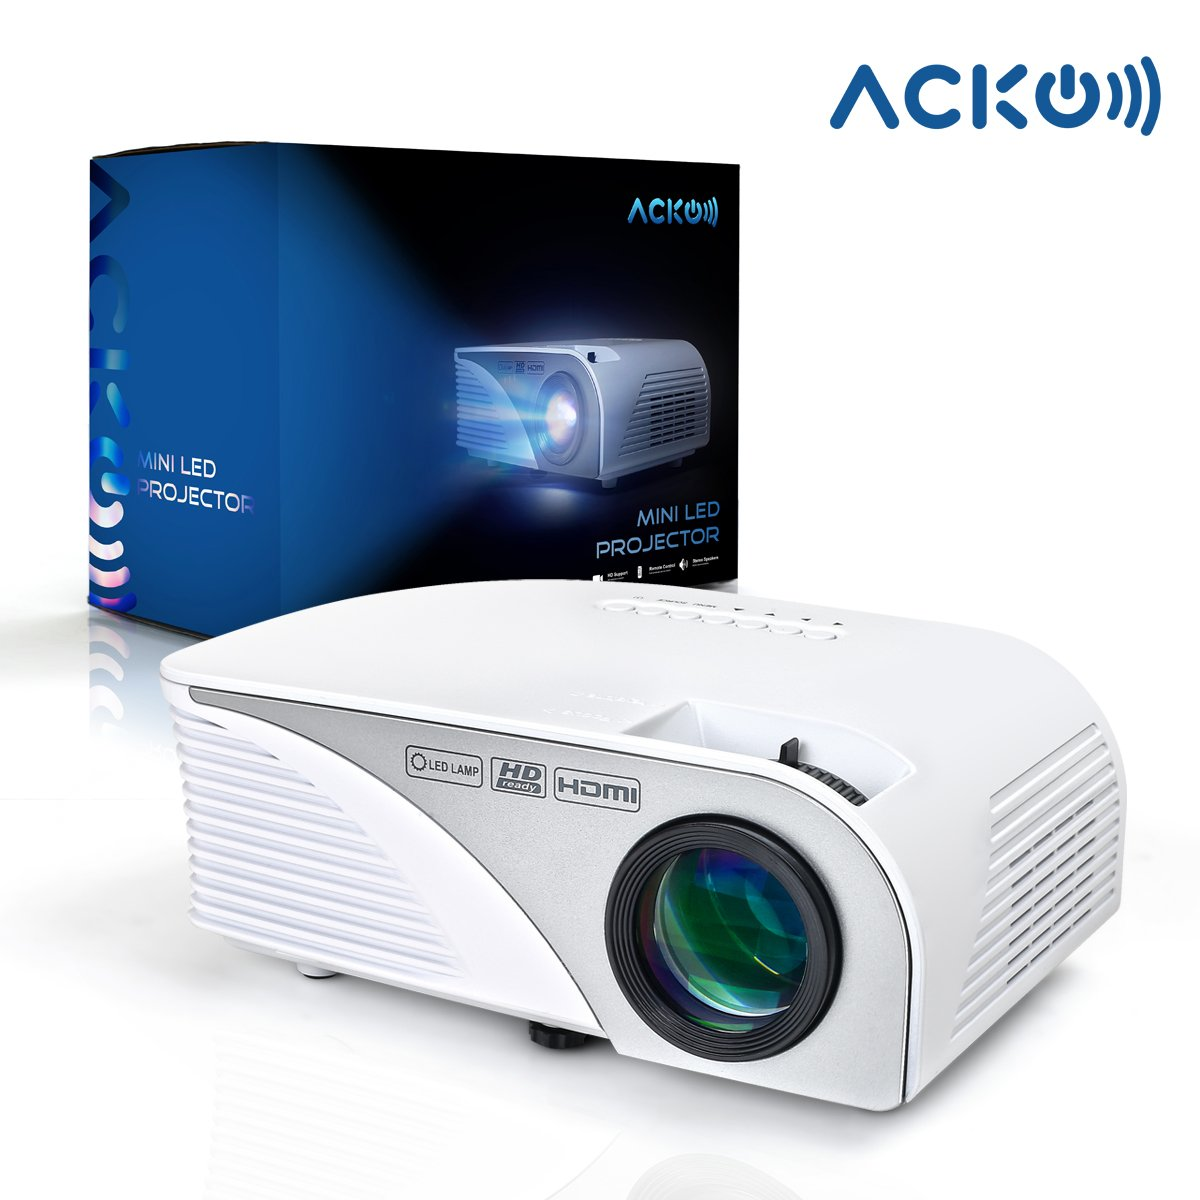 Acko portable mini hd led video projector review office for Hd projector reviews